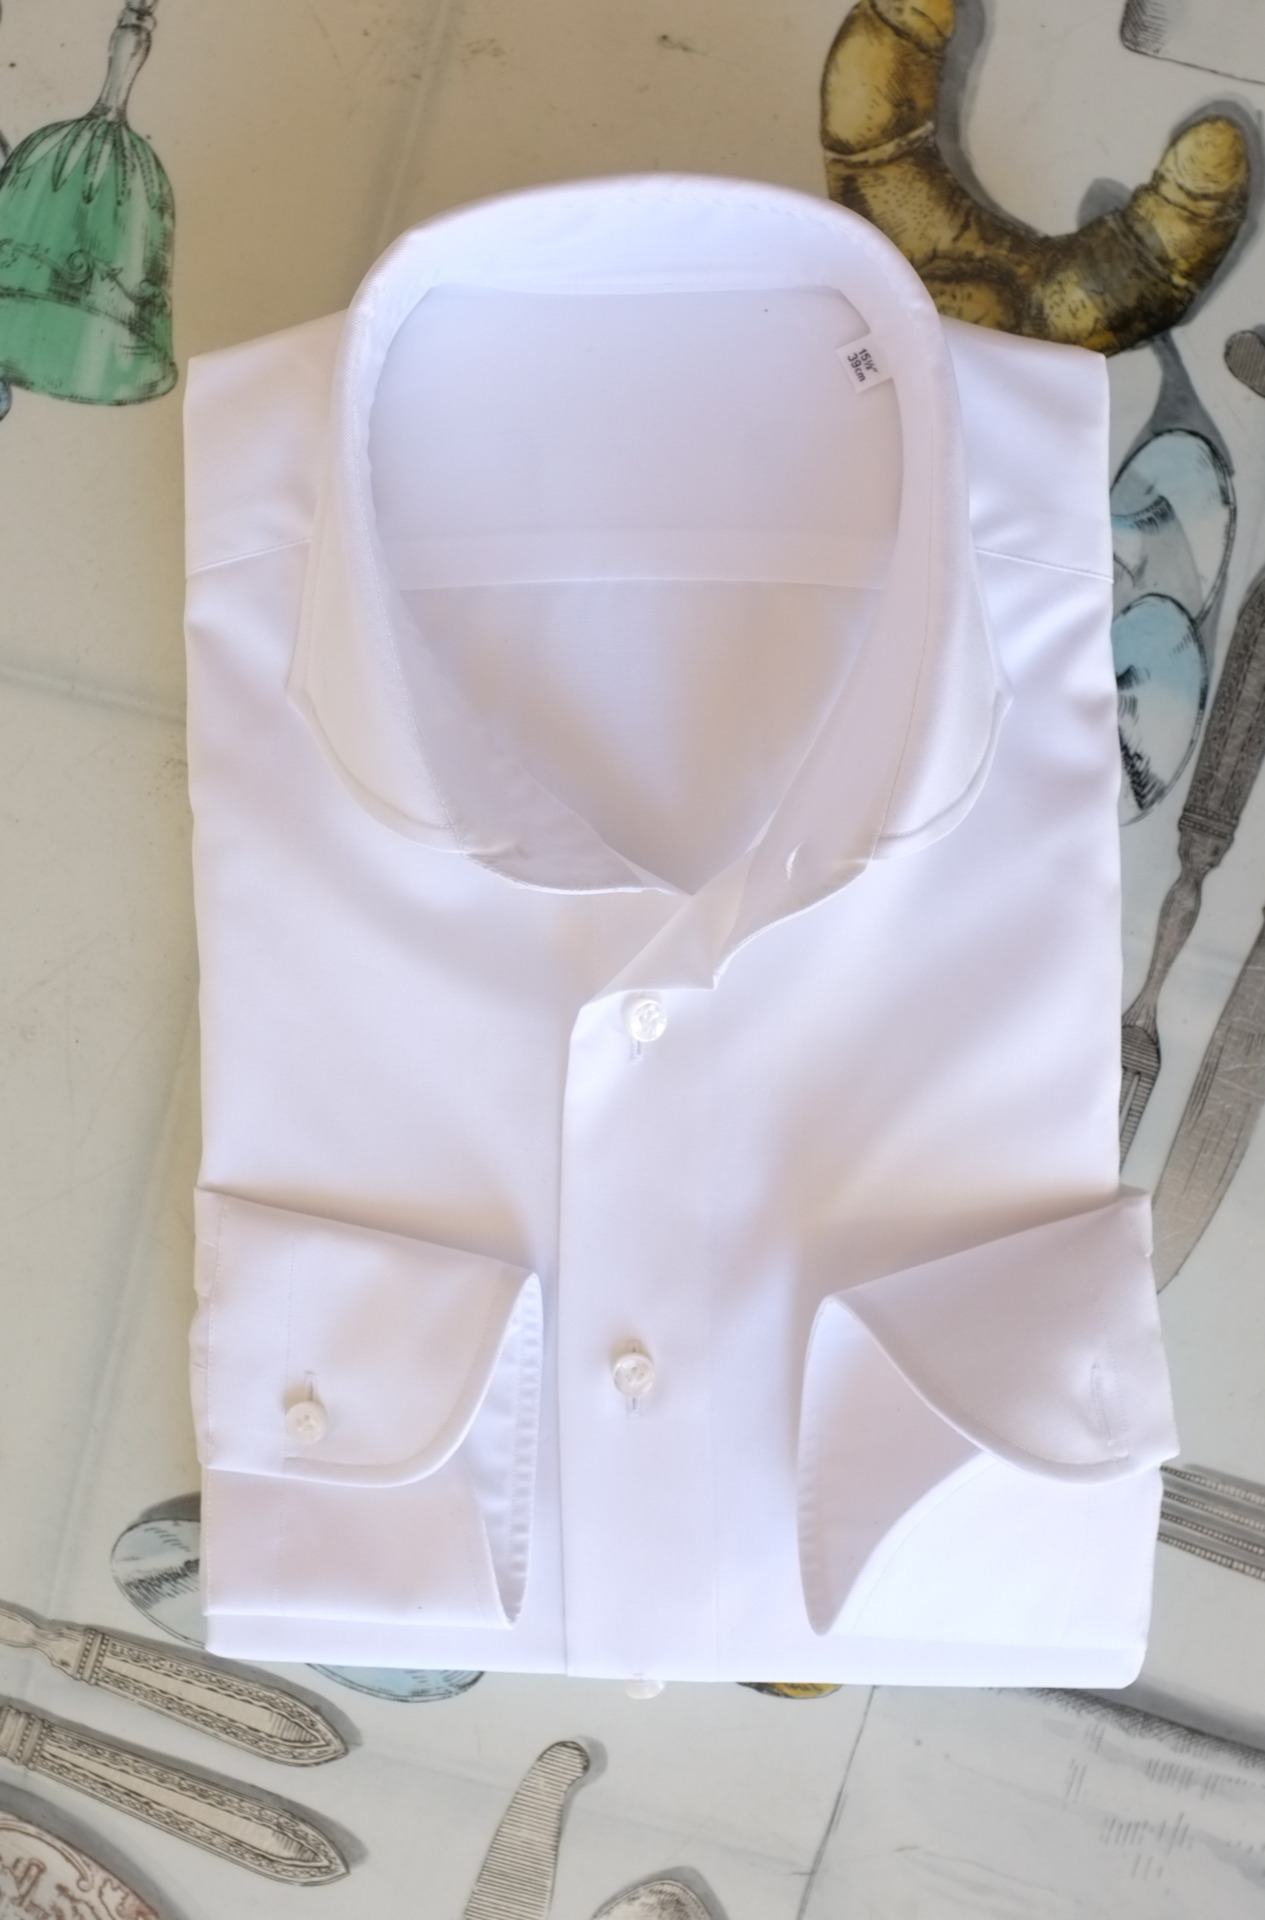 Idiot proof… patrickjohnsontailors:  The perfect white shirt. PJOHNSON